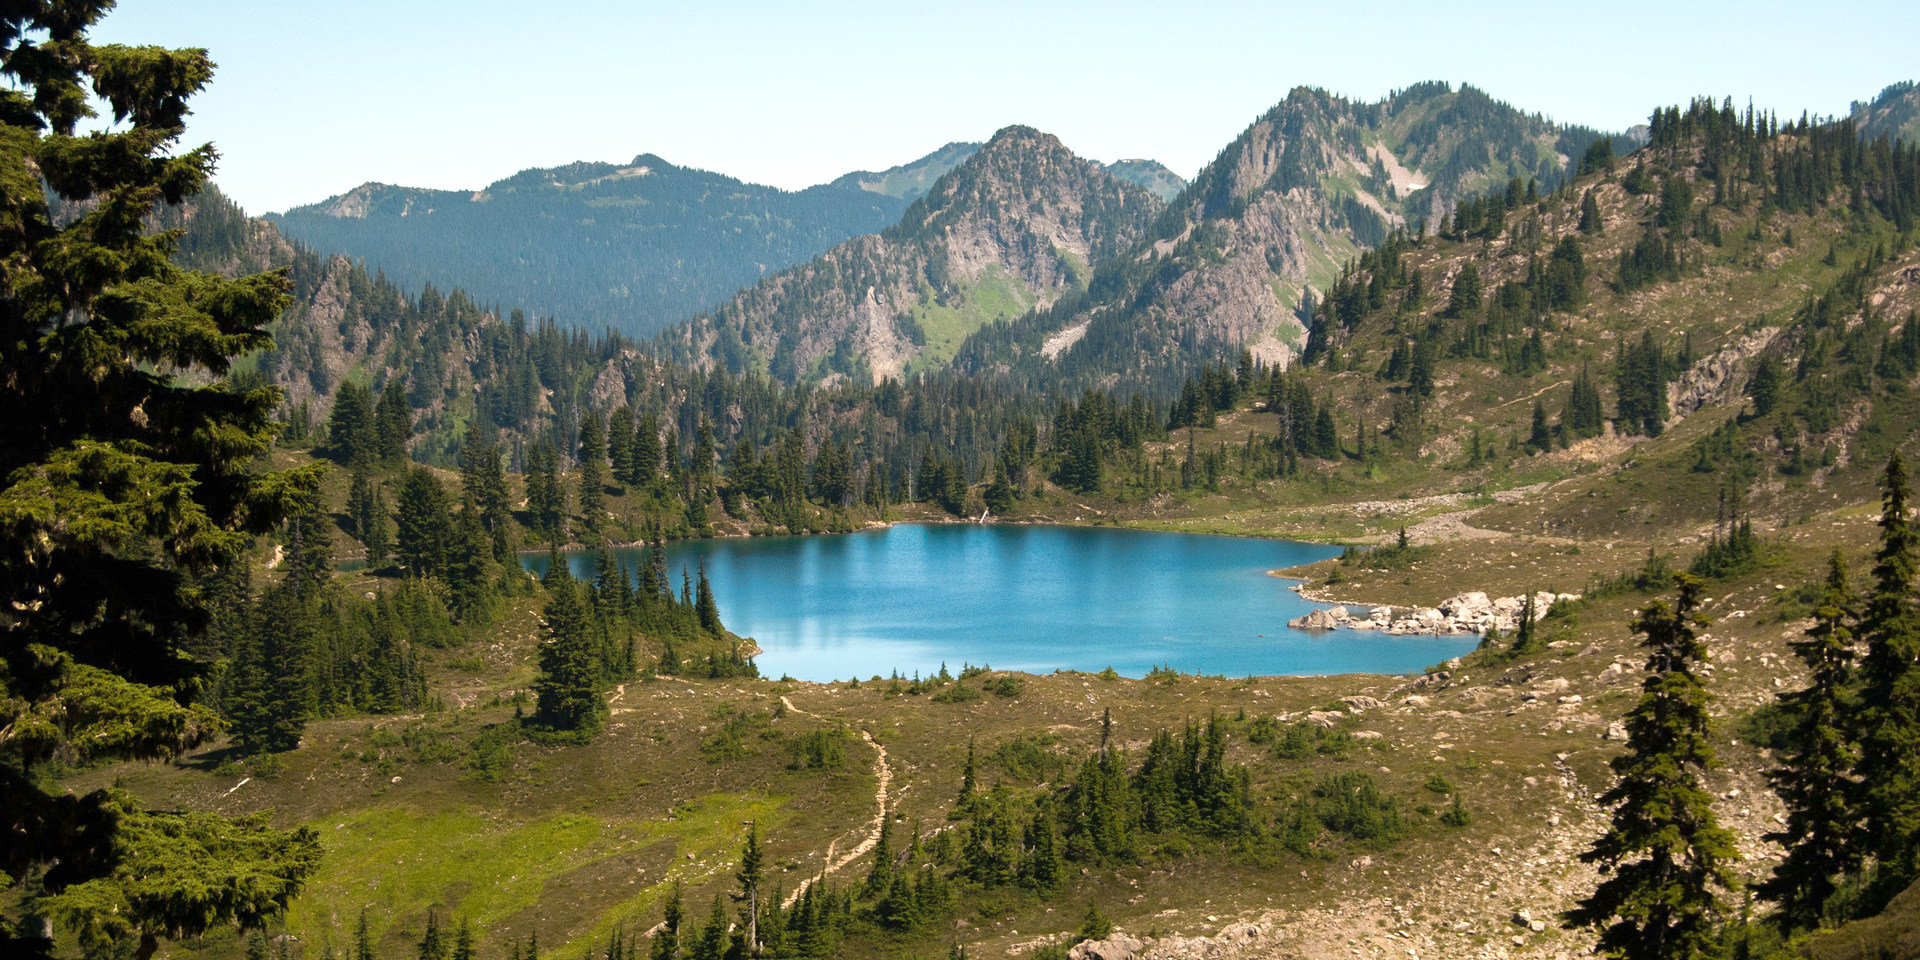 3-Day Itineraries for Olympic National Park - Outdoor Project